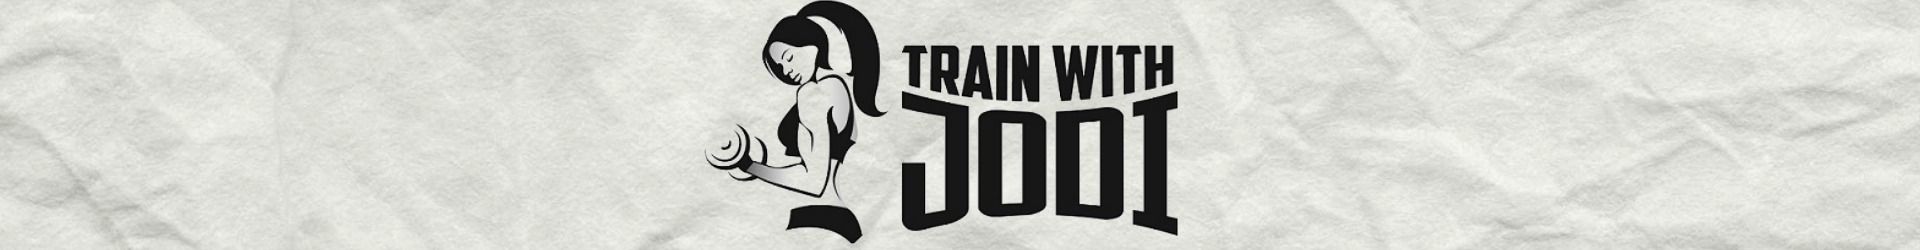 Train with Jodi